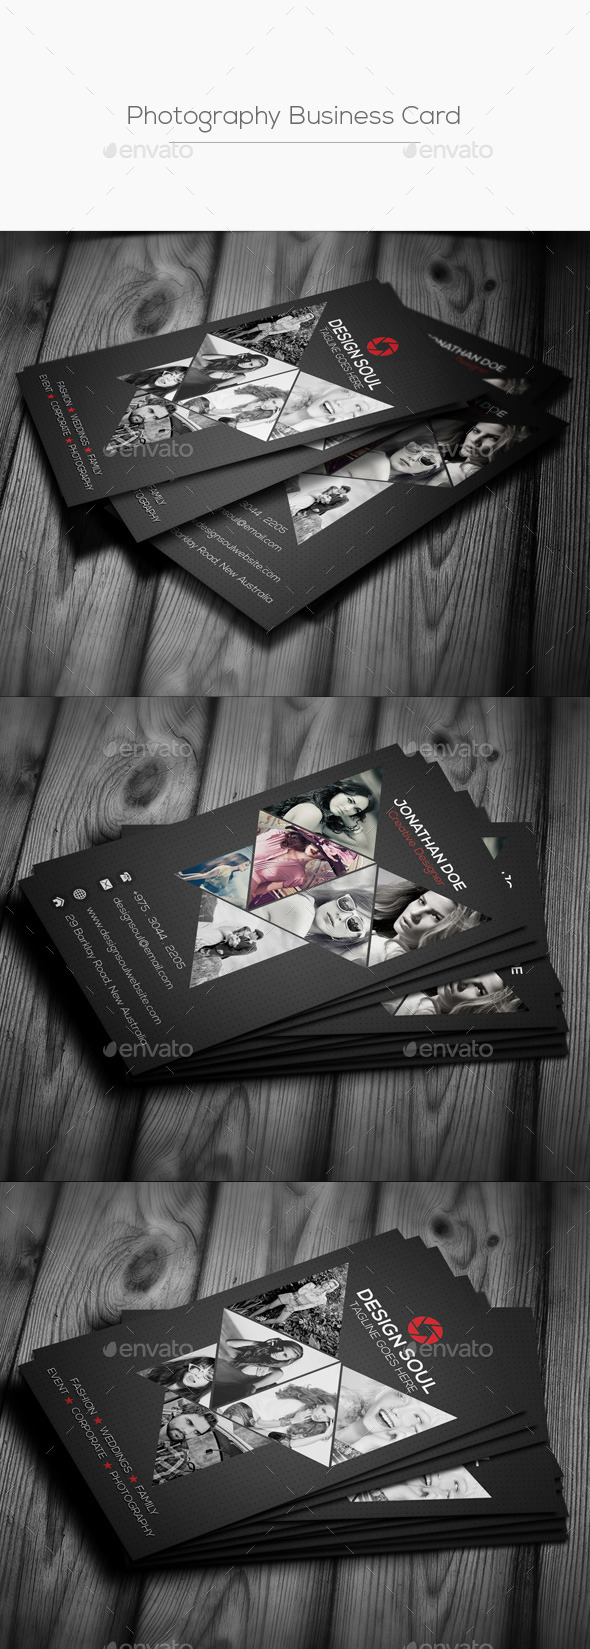 Vertical Photography Business Card - Creative Business Cards